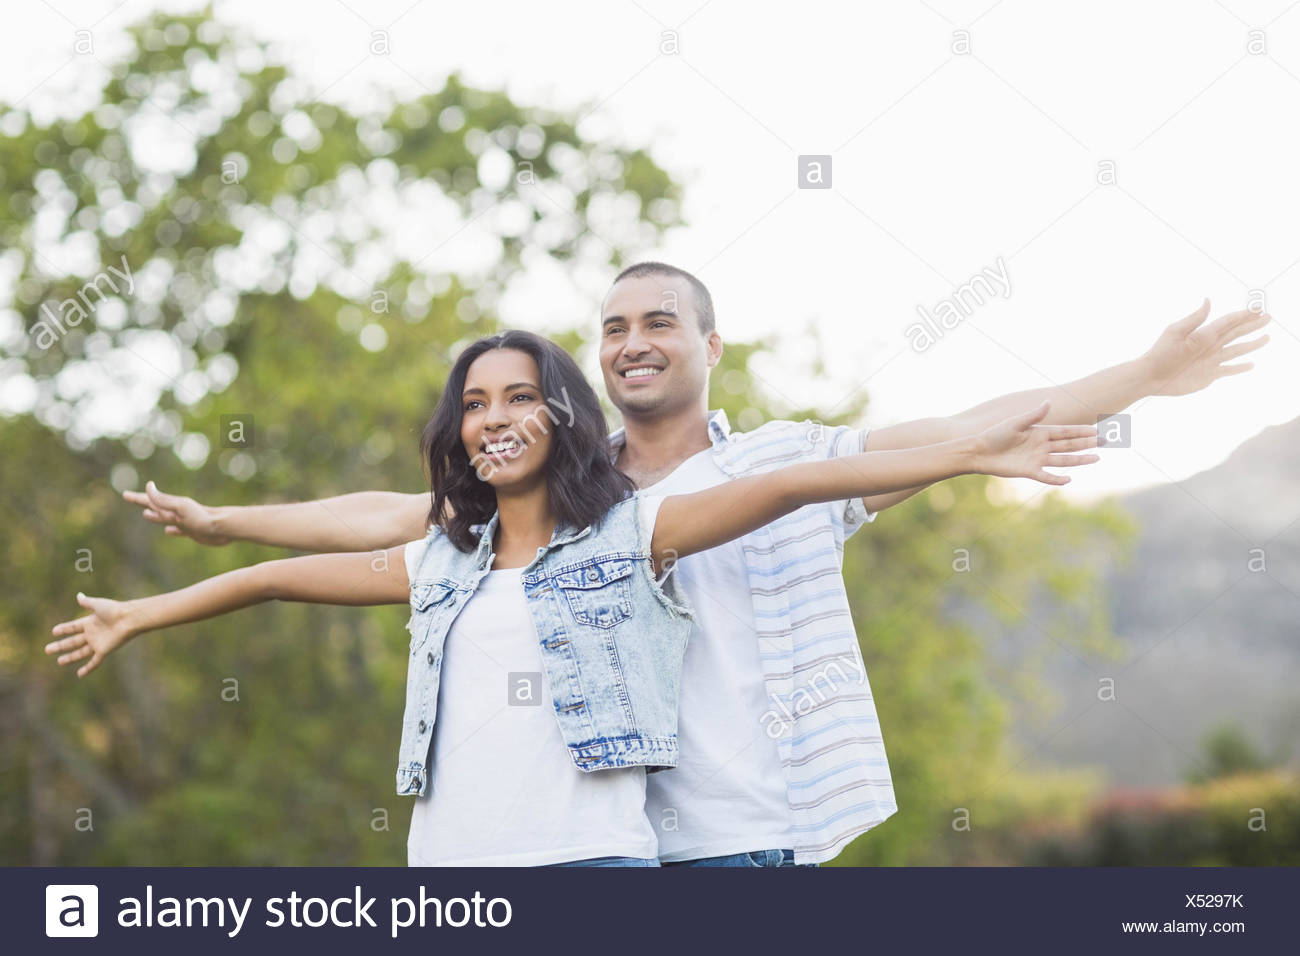 Happy young couple opening arms - Stock Image